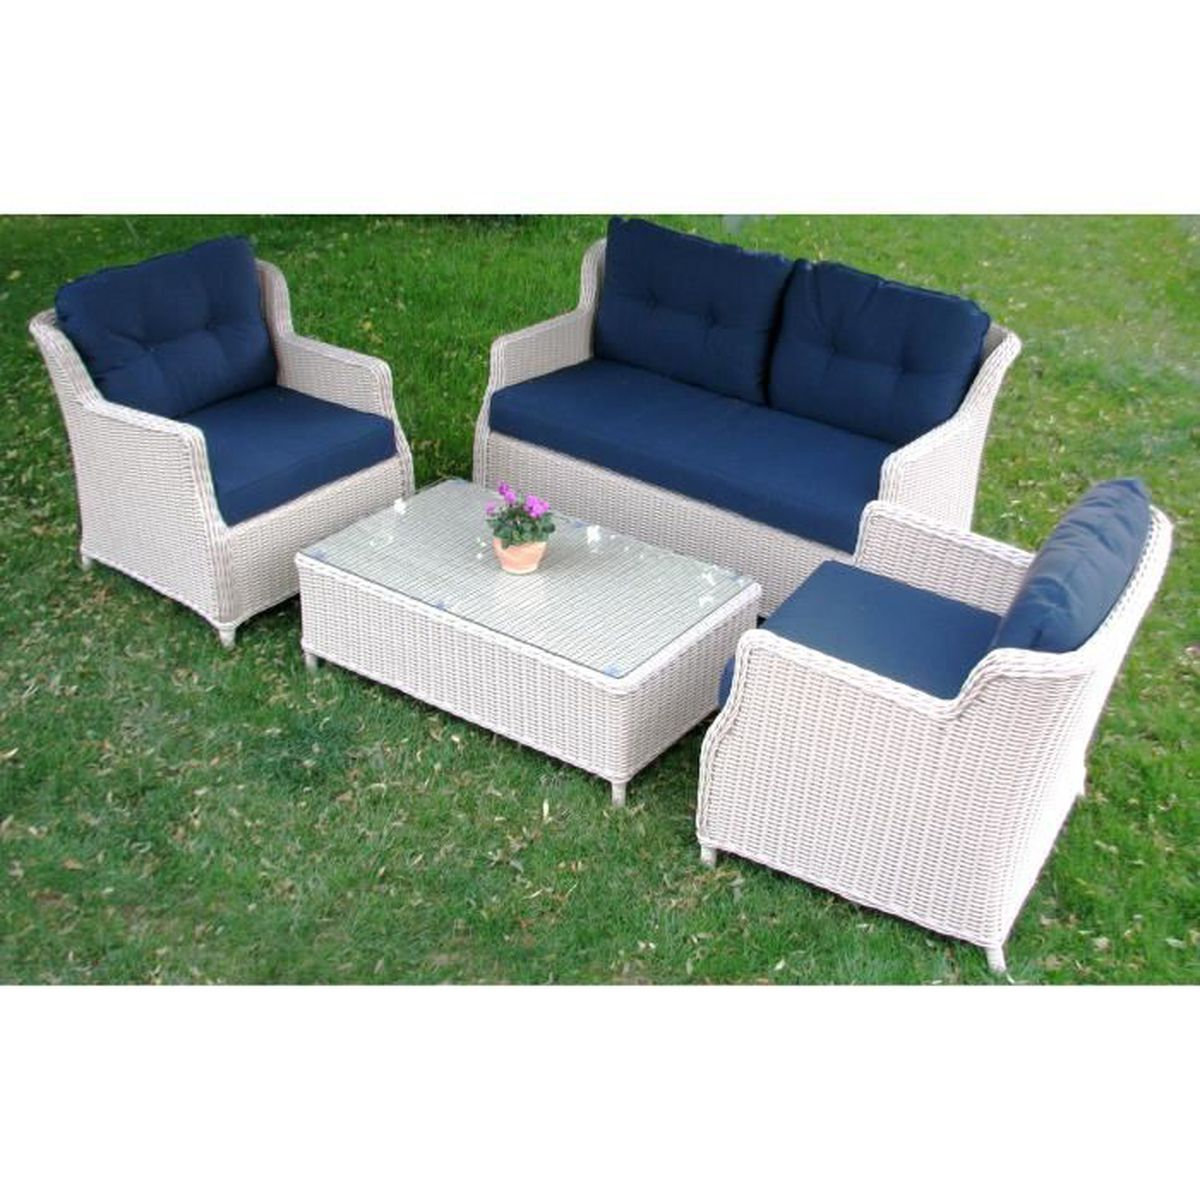 salon de jardin mobilier de jardin rotin poly ensemble de meubles classique el gant confortable. Black Bedroom Furniture Sets. Home Design Ideas